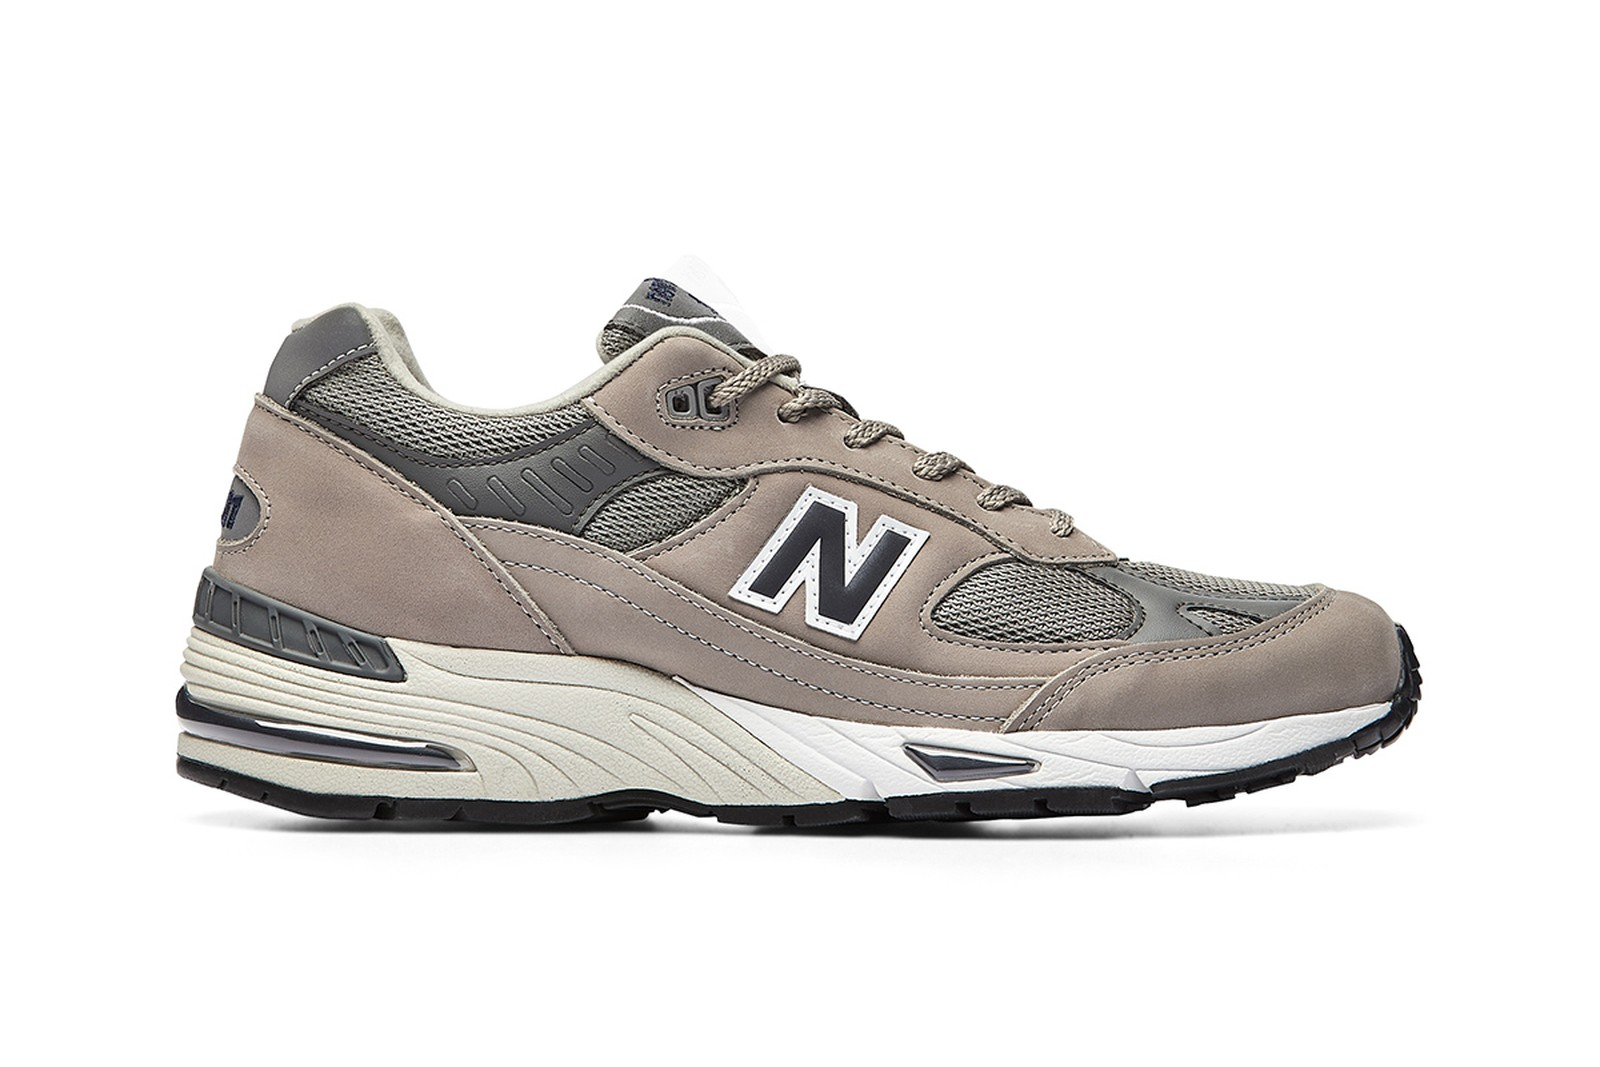 New Balance Celebrate the 991's 20th Anniversary with Two Grey Colourways